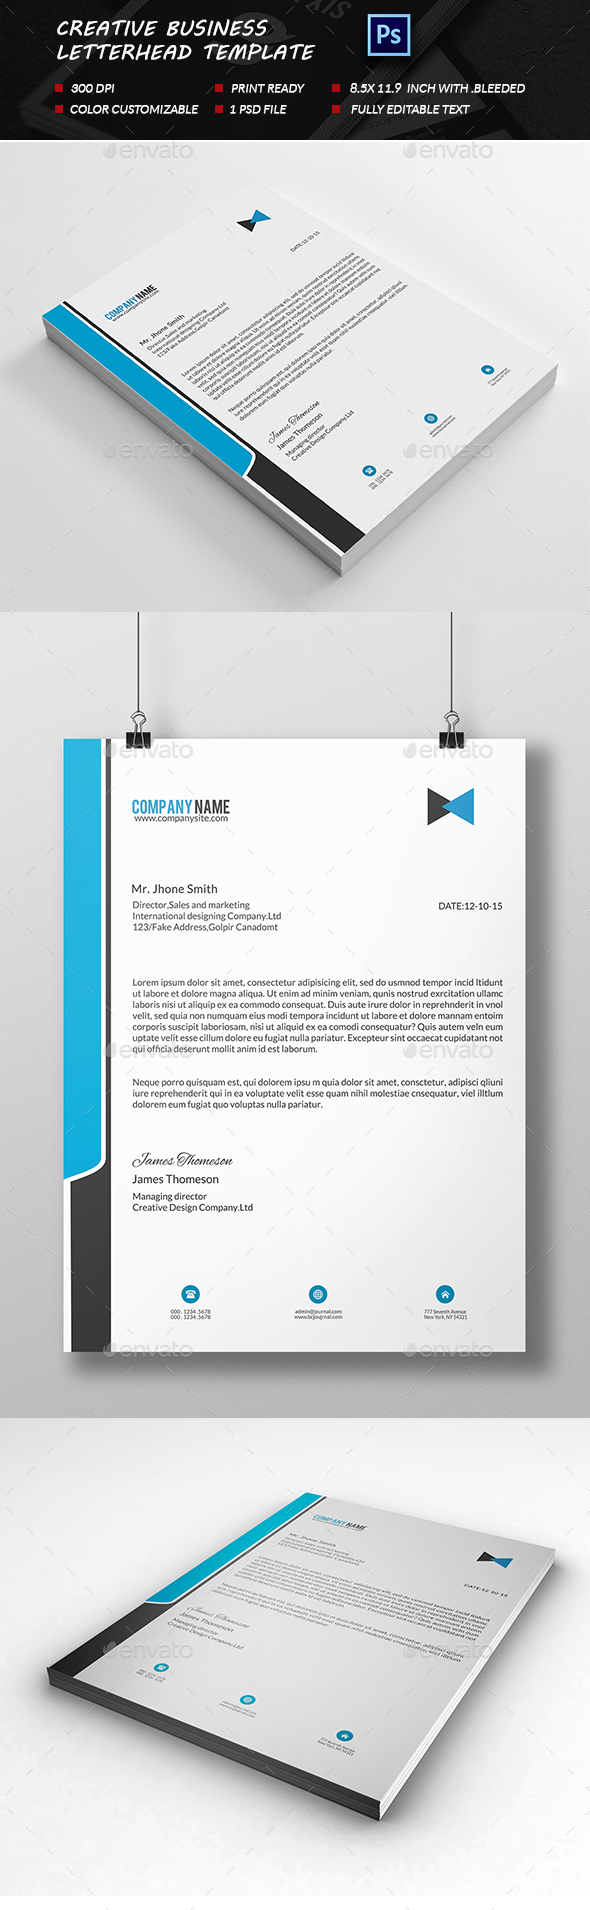 Corporate Business Letterhead  Corporate Business Business And